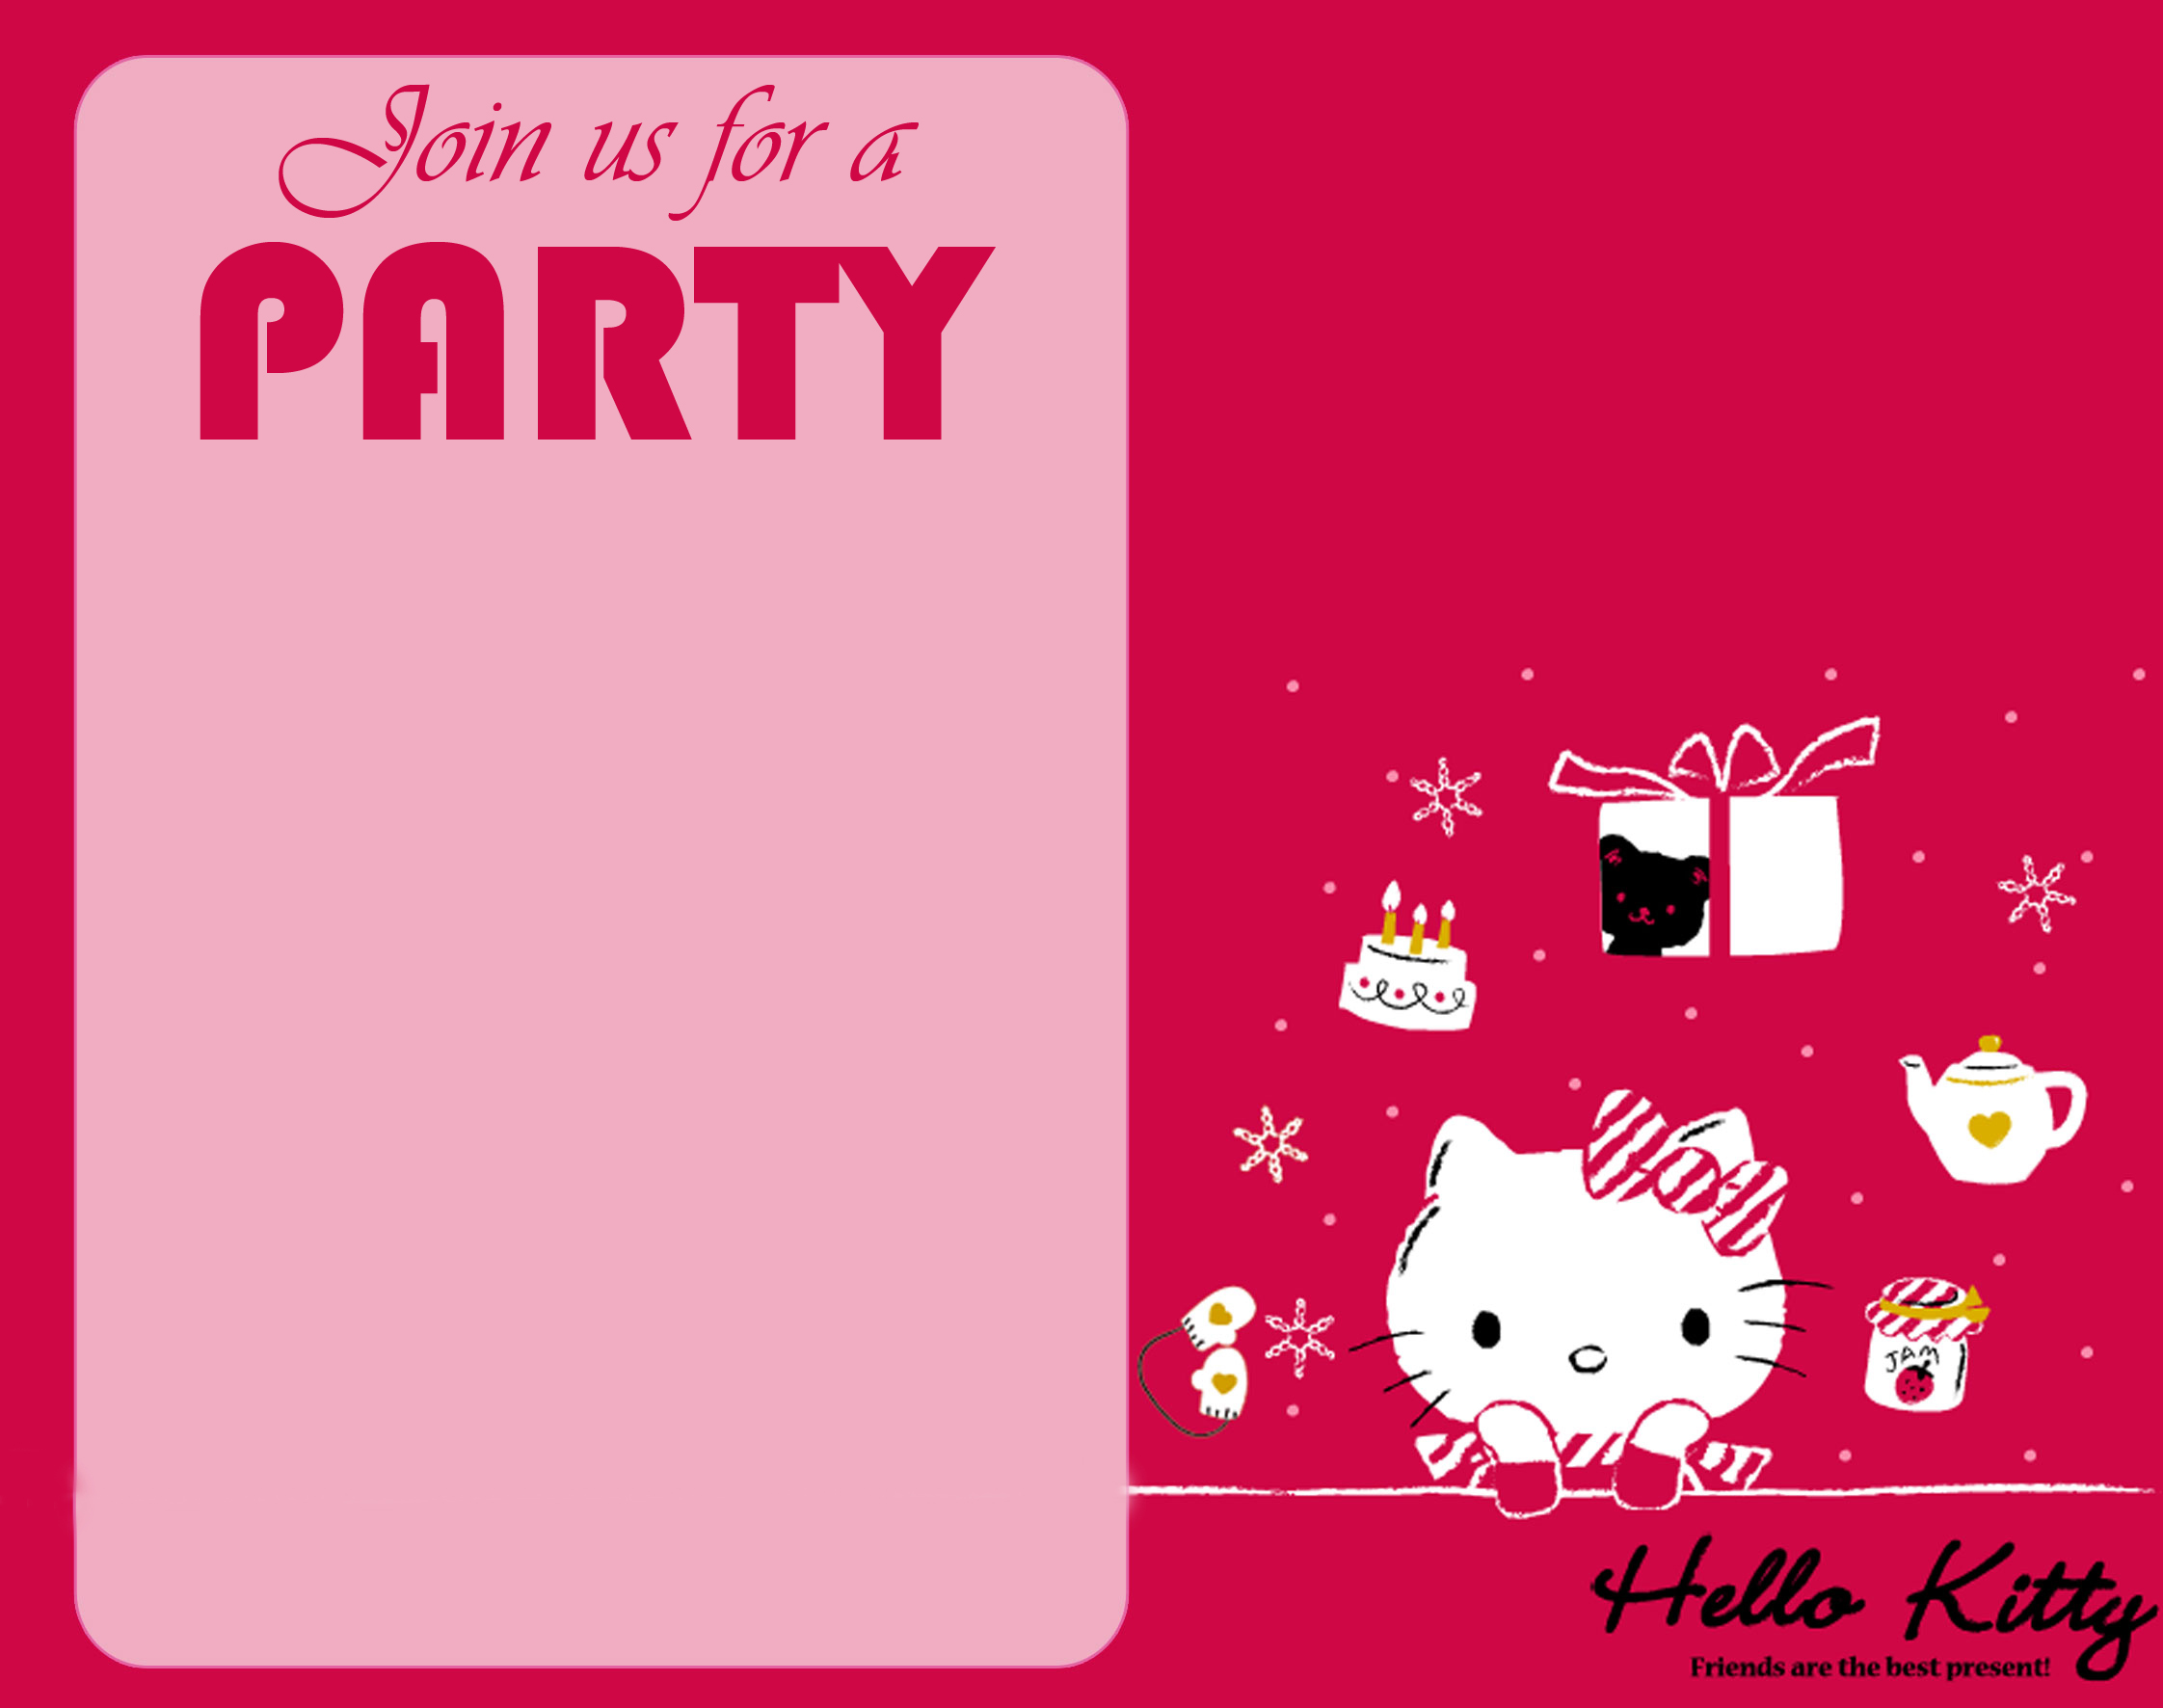 Best Wallpaper Hello Kitty 1080p - Free_Hello_Kitty_Wallpaper_for_Party_Invitation_Card_Design  Snapshot_725188.jpg